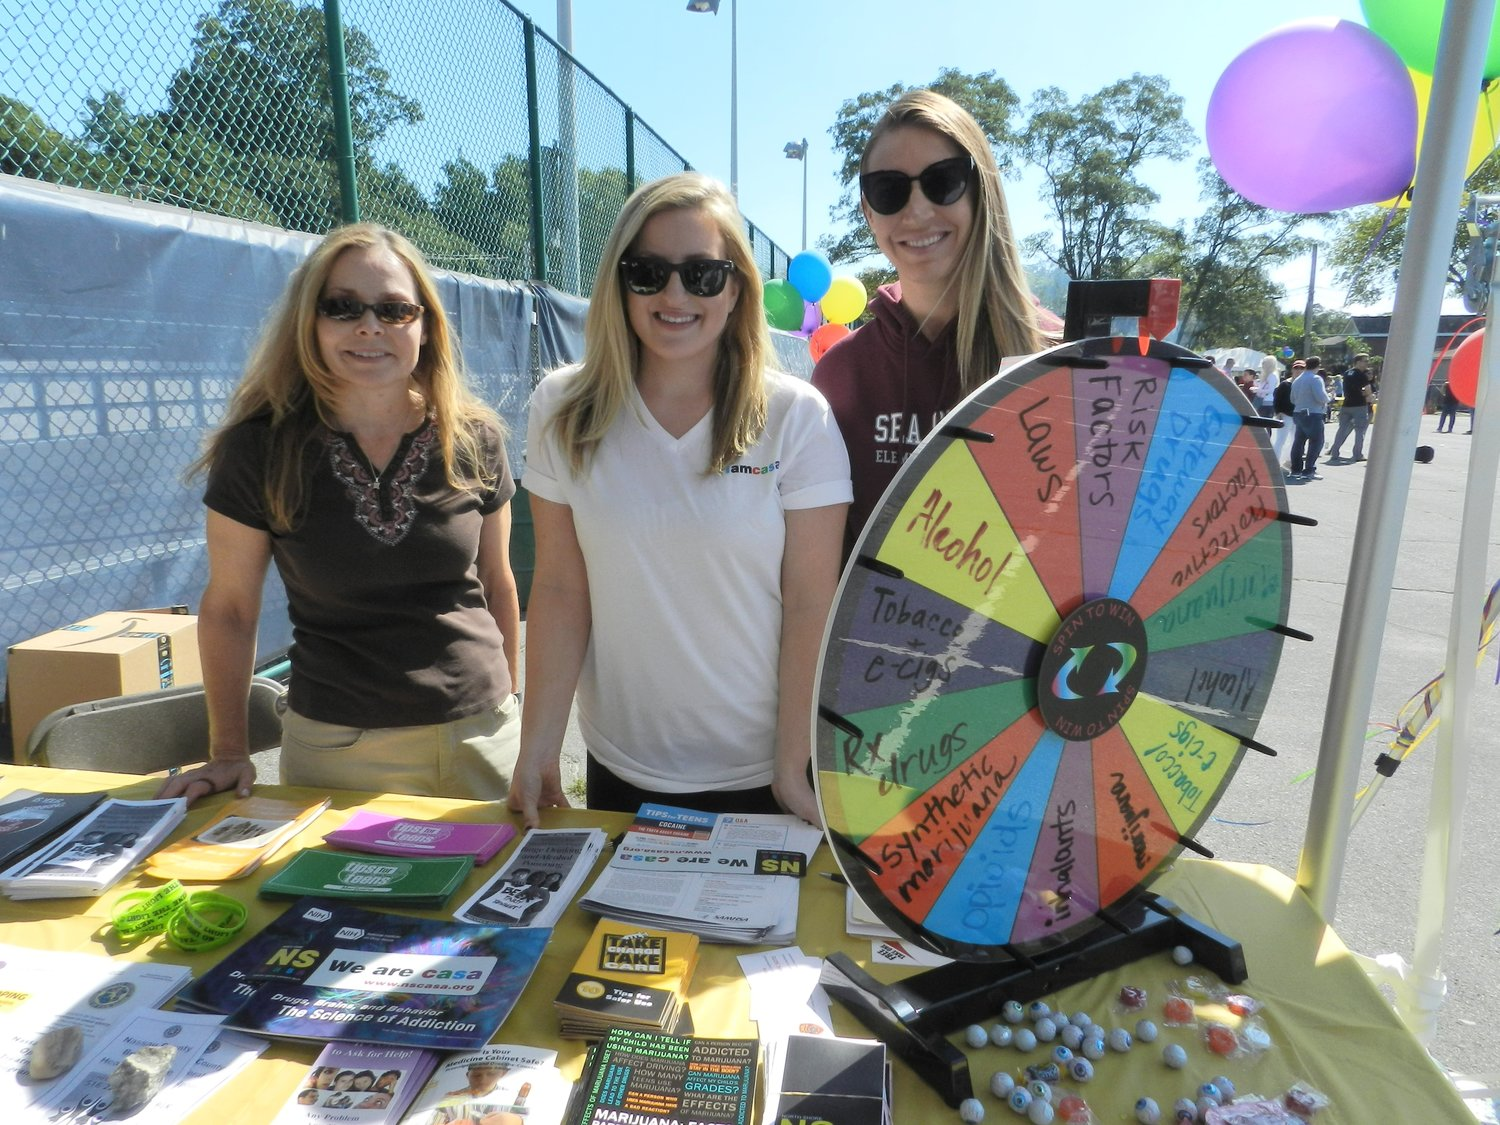 North Shore School District's social workers, Rachel McAree, left, Reisa Berga and Kaitlin Harvey, provided the community with information about substance abuse education and prevention.